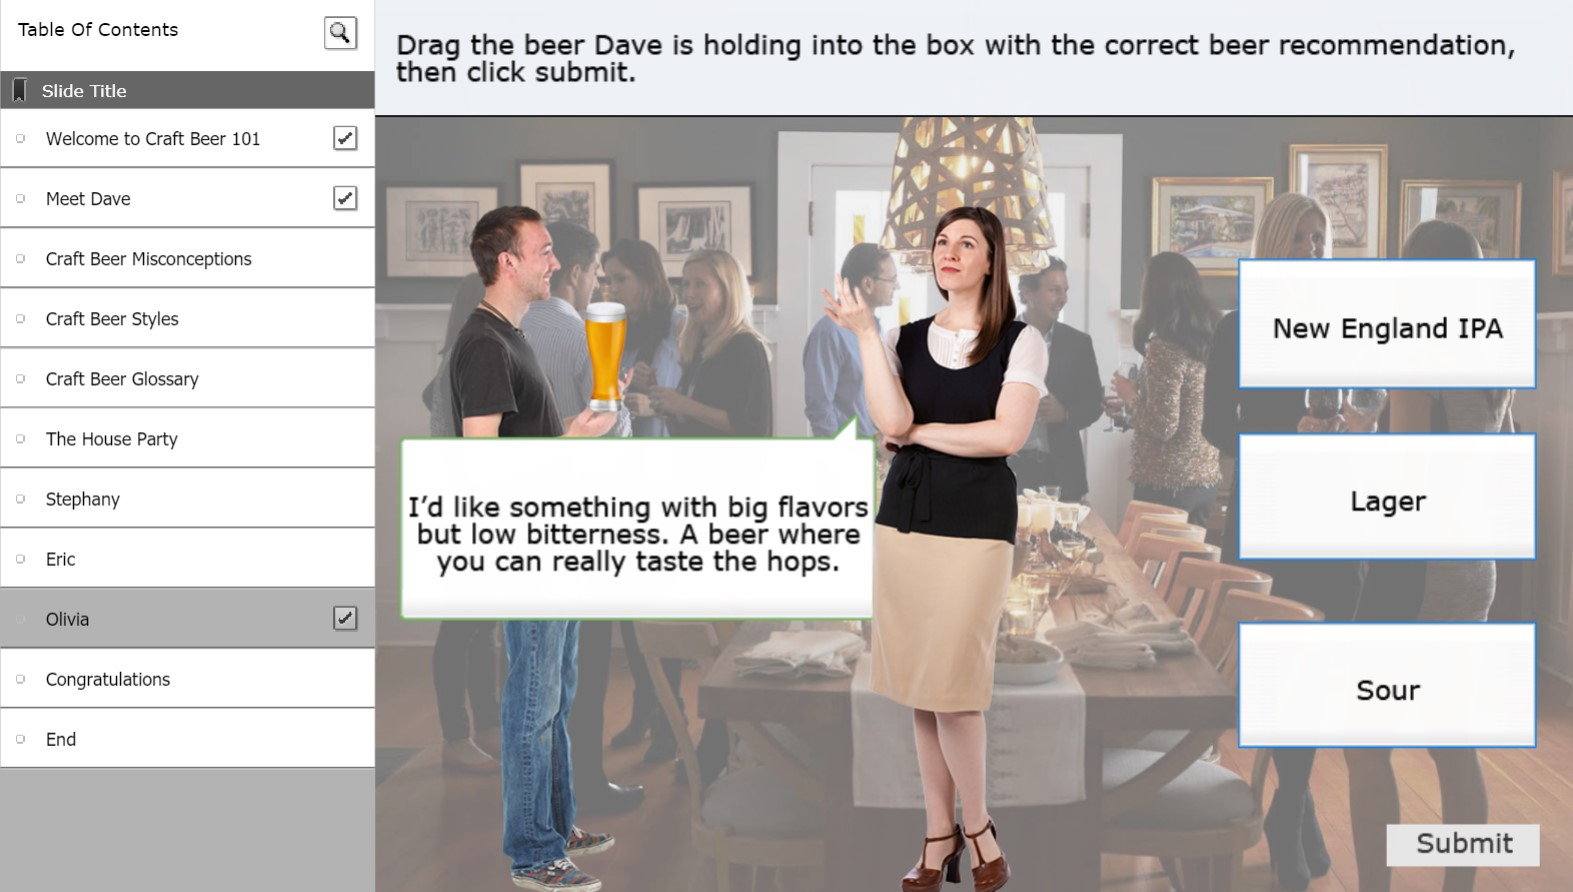 Screenshot of craft beer learning object. Woman is asking man about New England IPAs